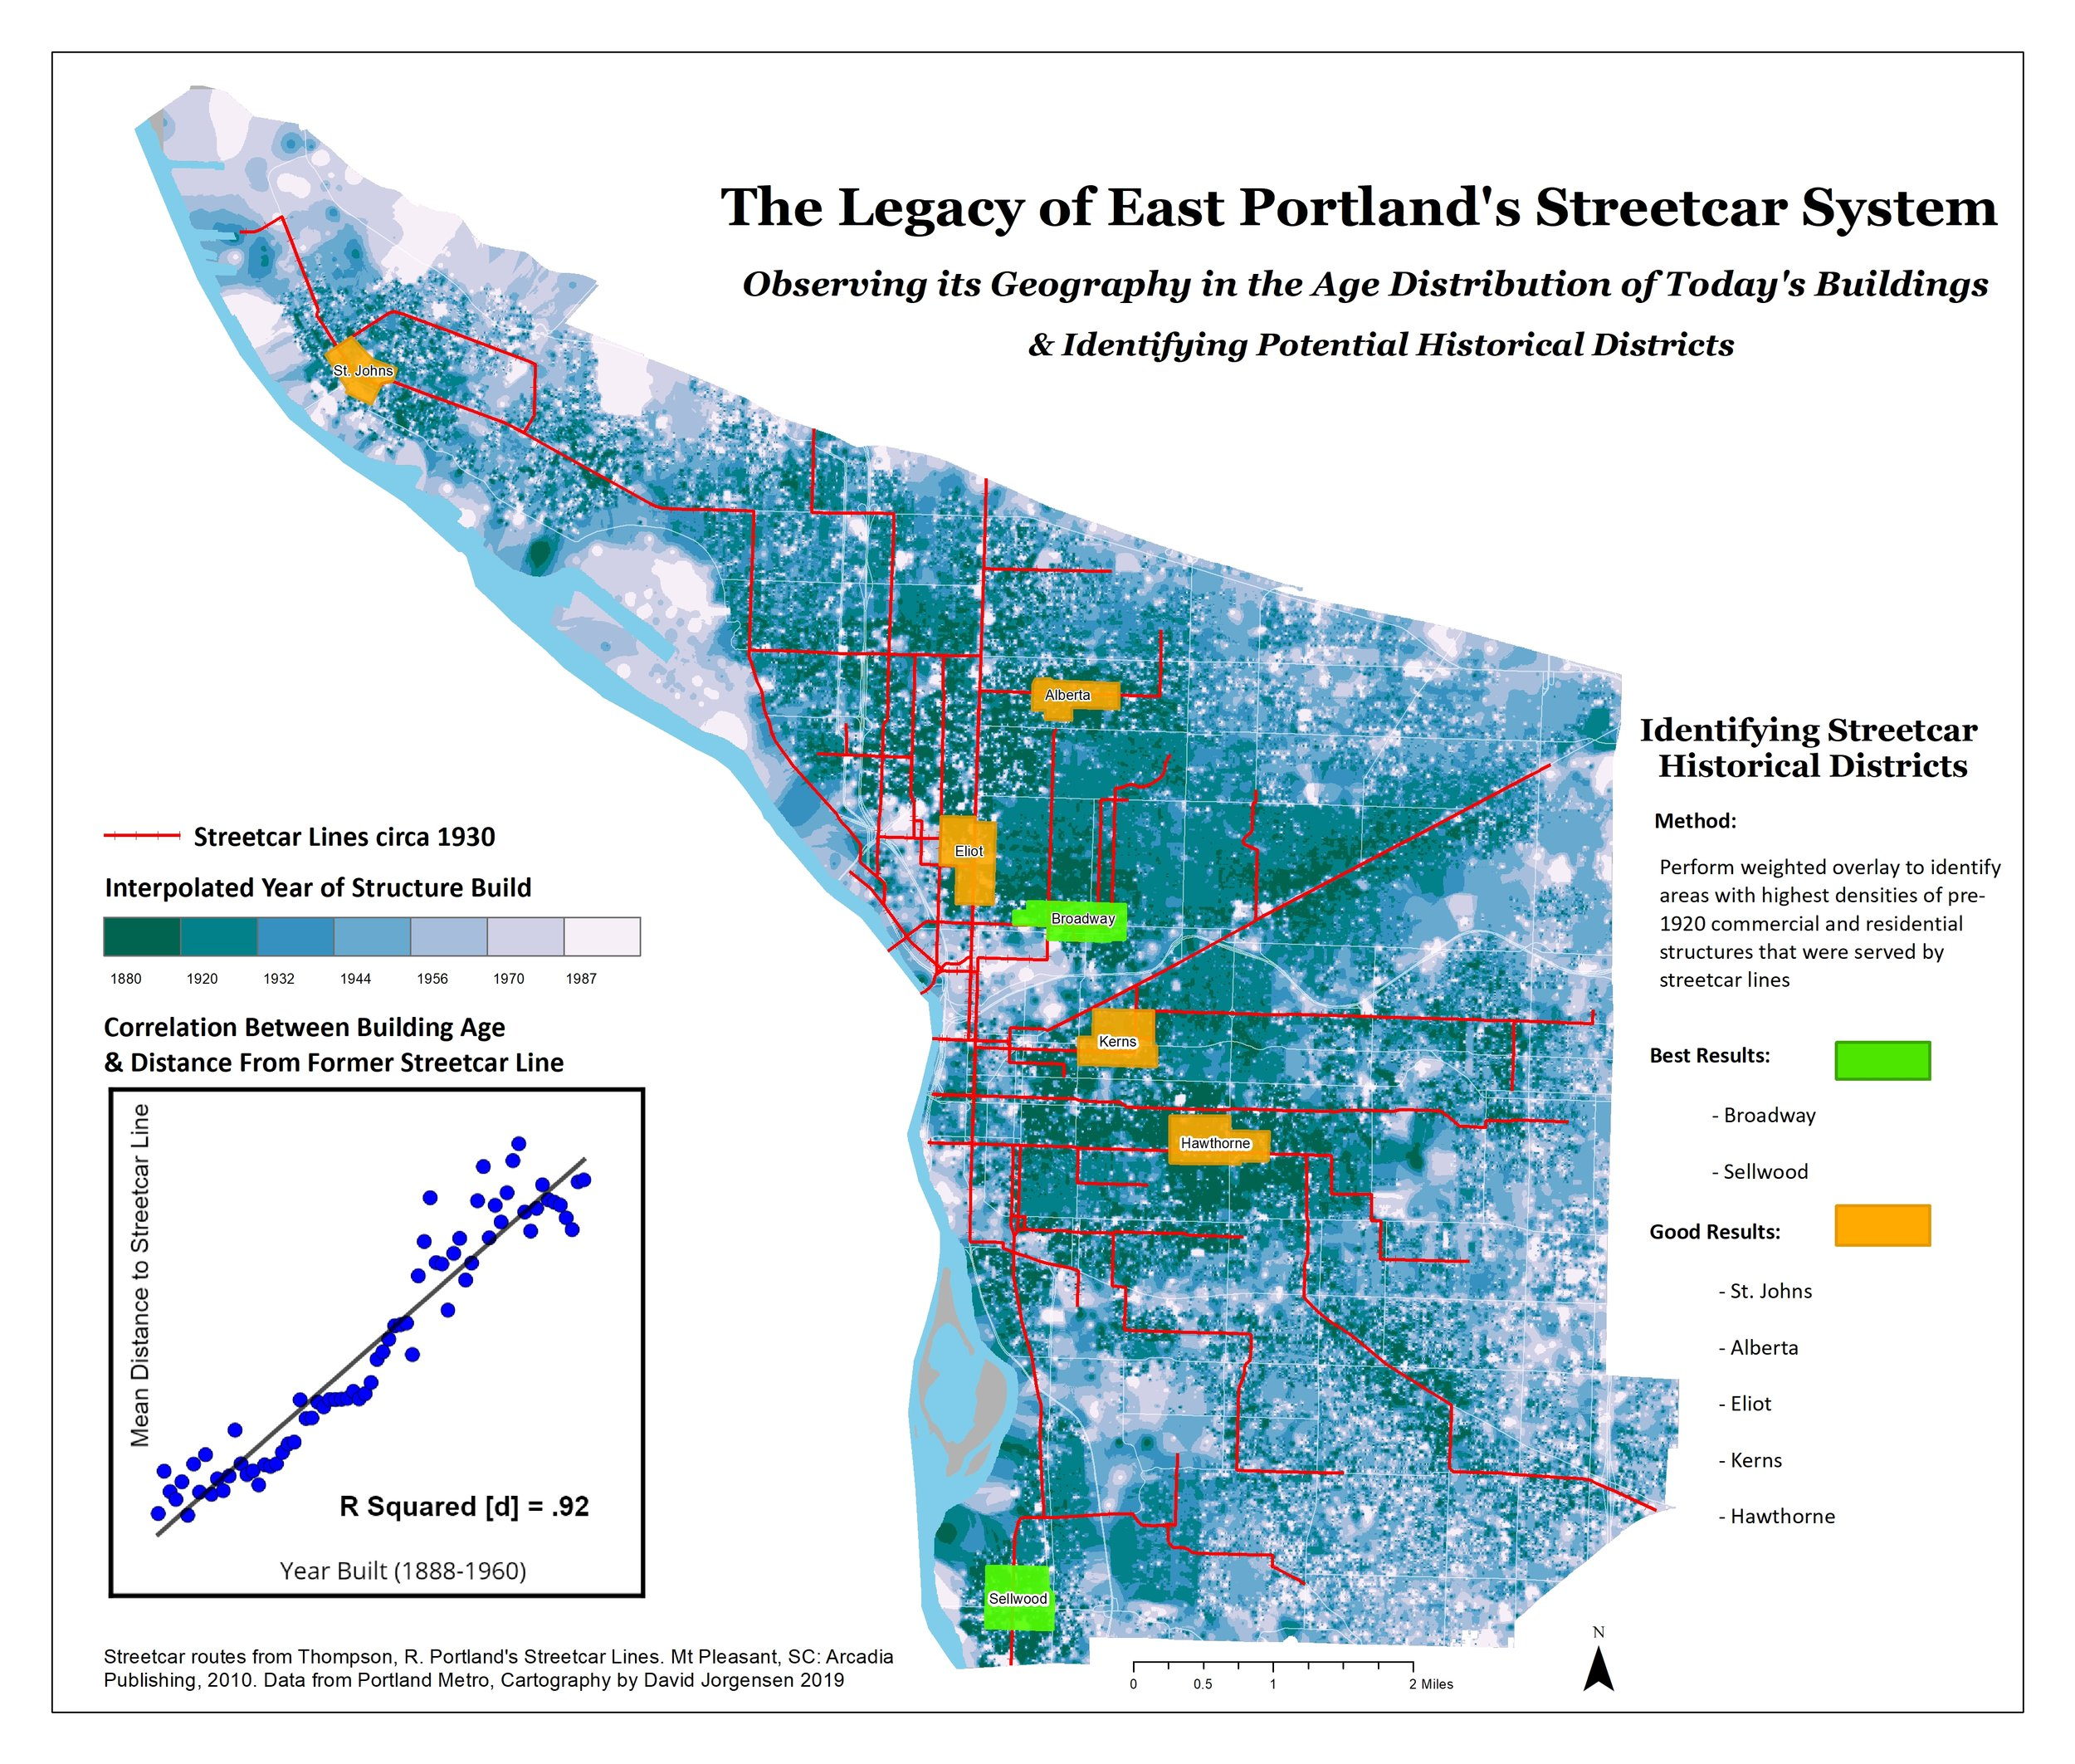 Lingering Influences of East Portland's Streetcar System